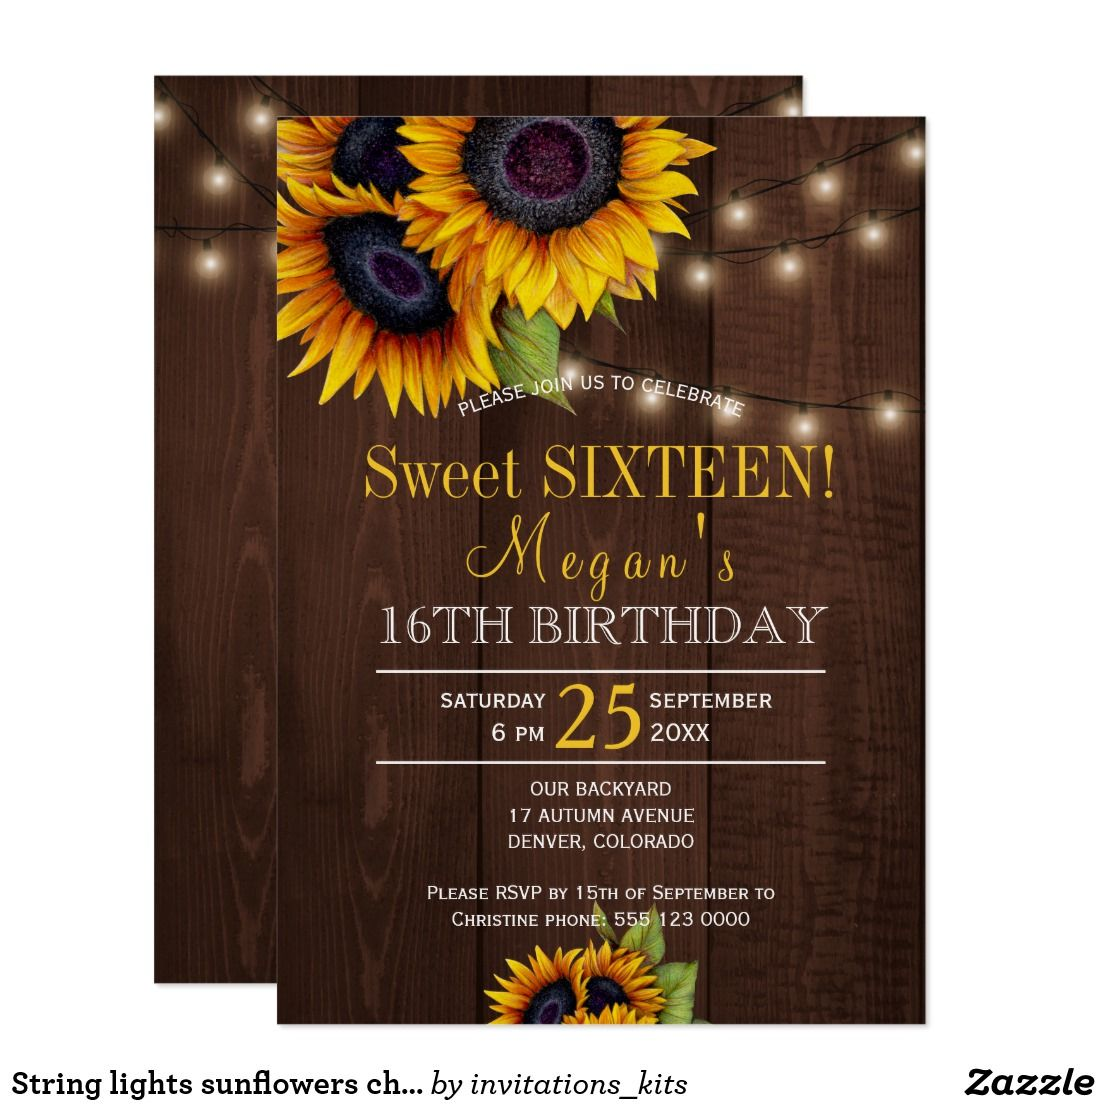 String lights sunflowers chic rustic sweet sixteen card   Party ...